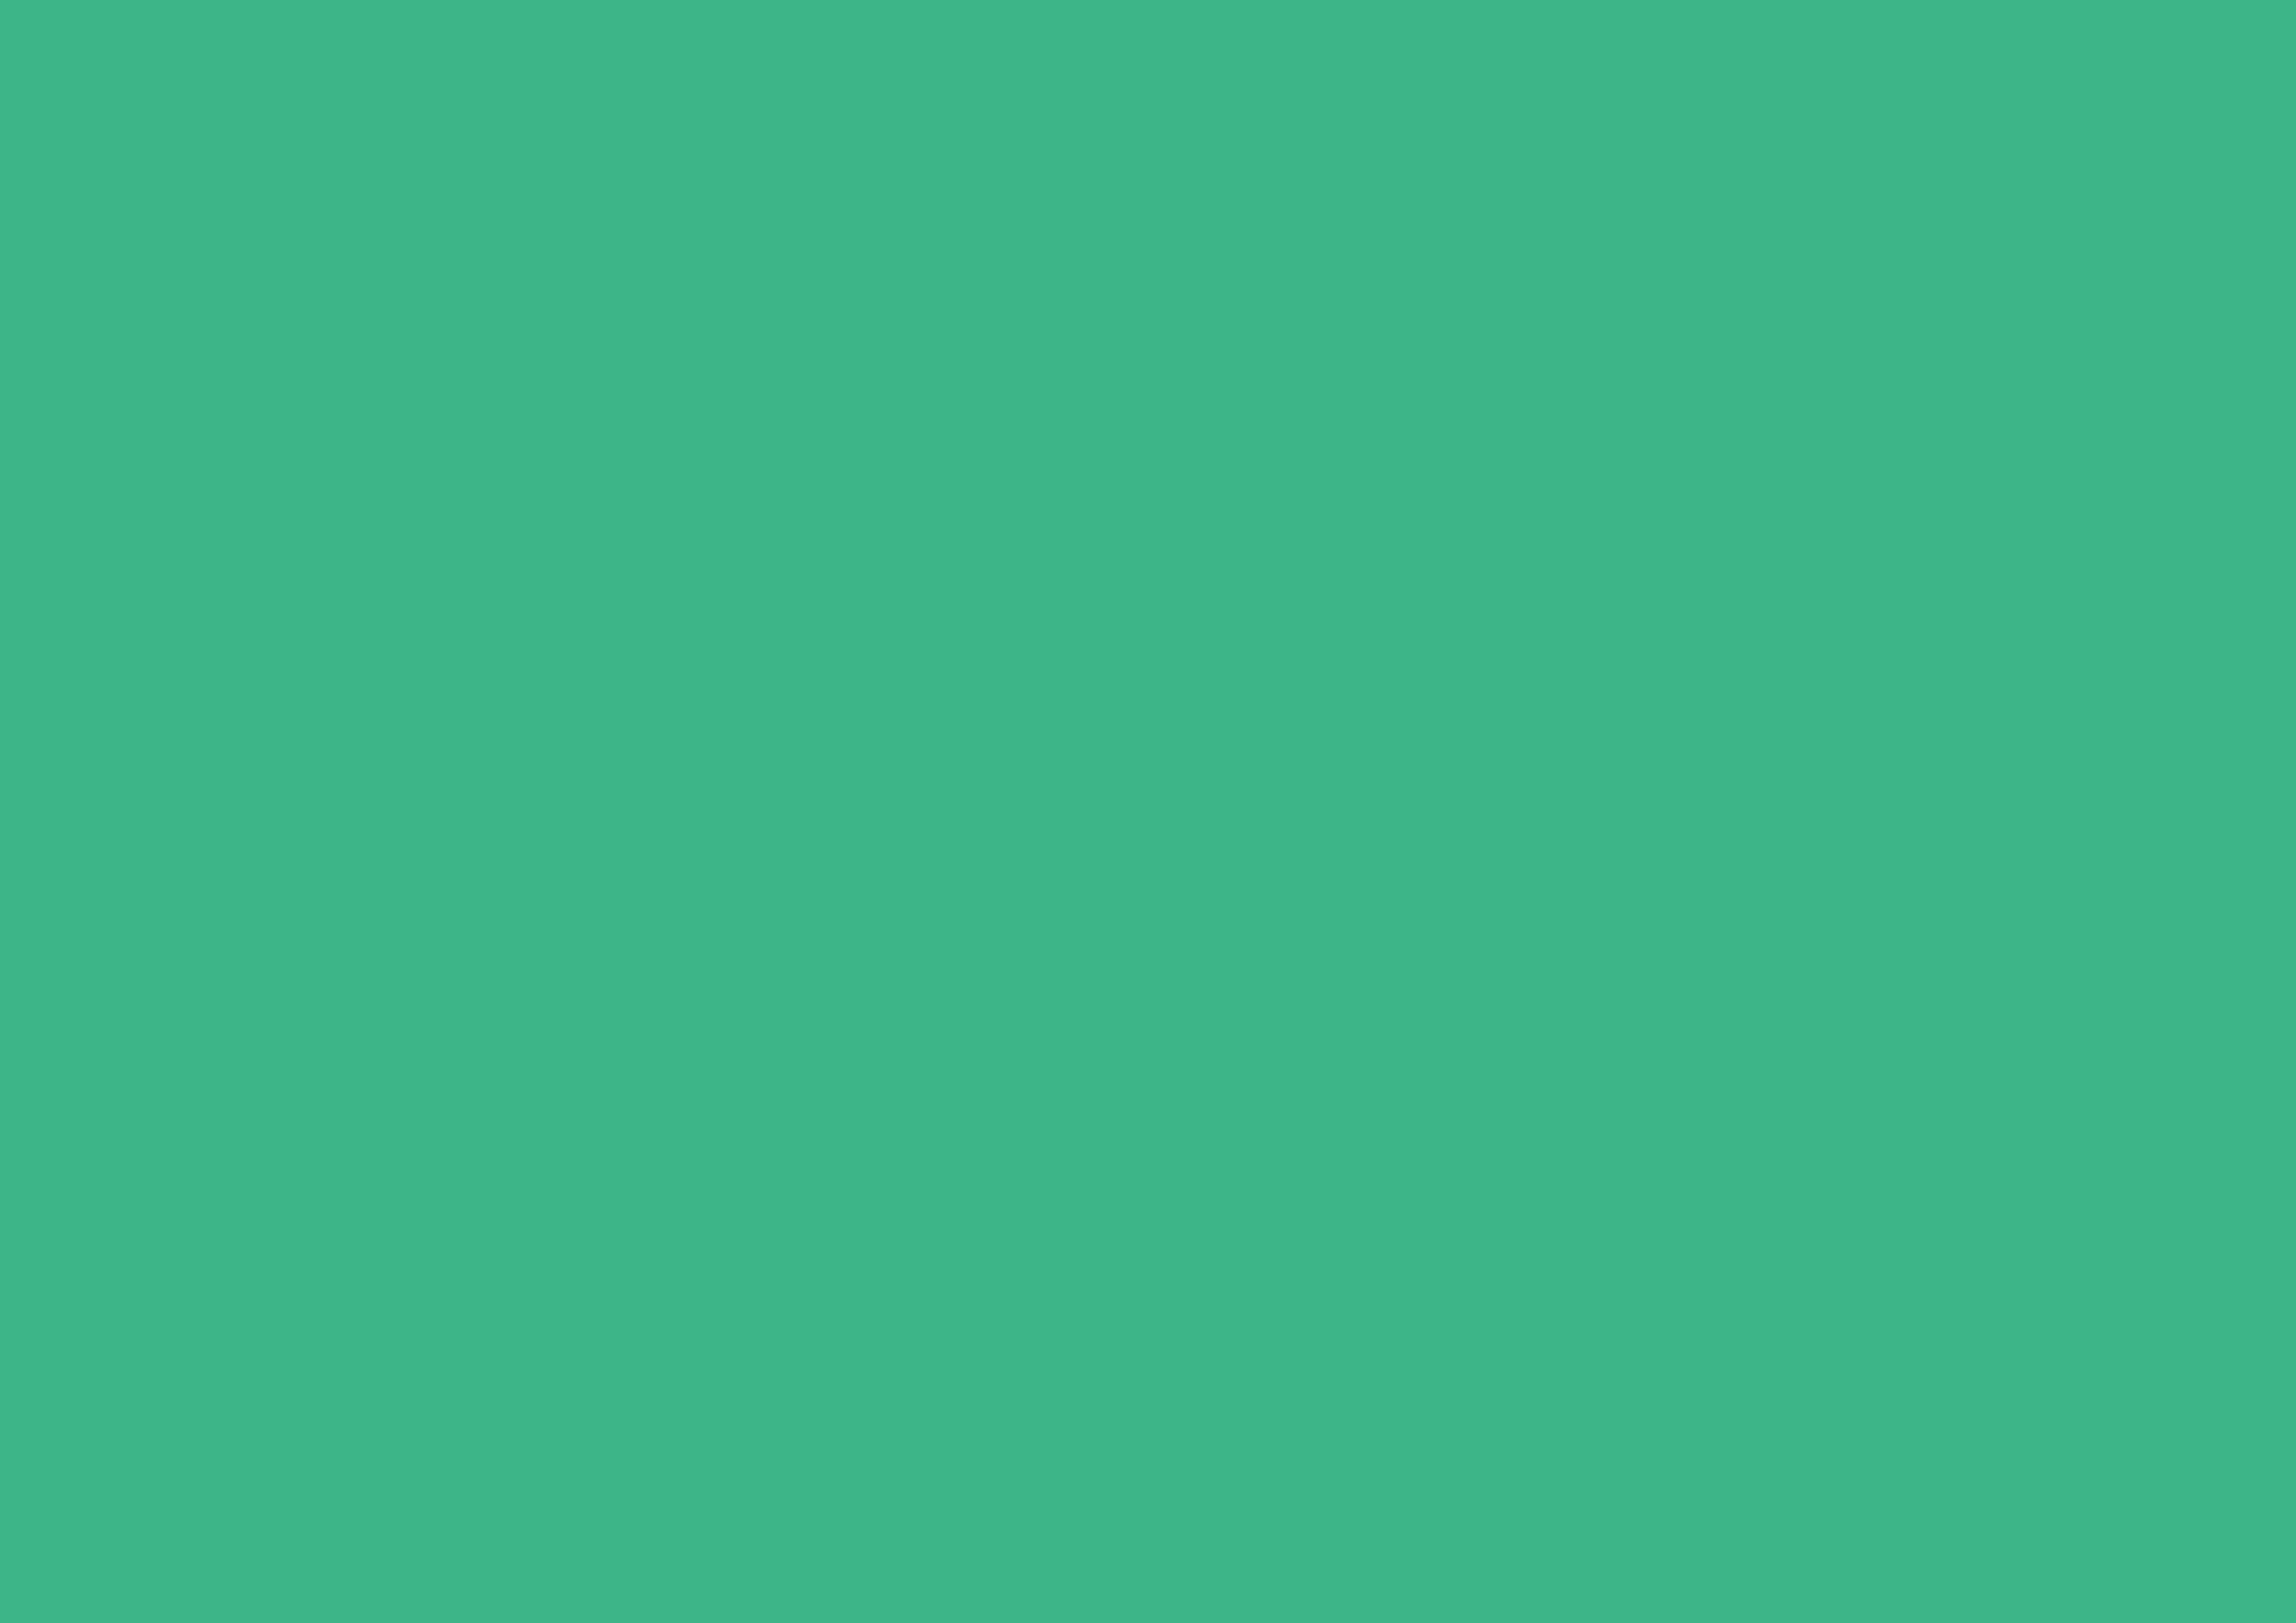 3508x2480 Mint Solid Color Background